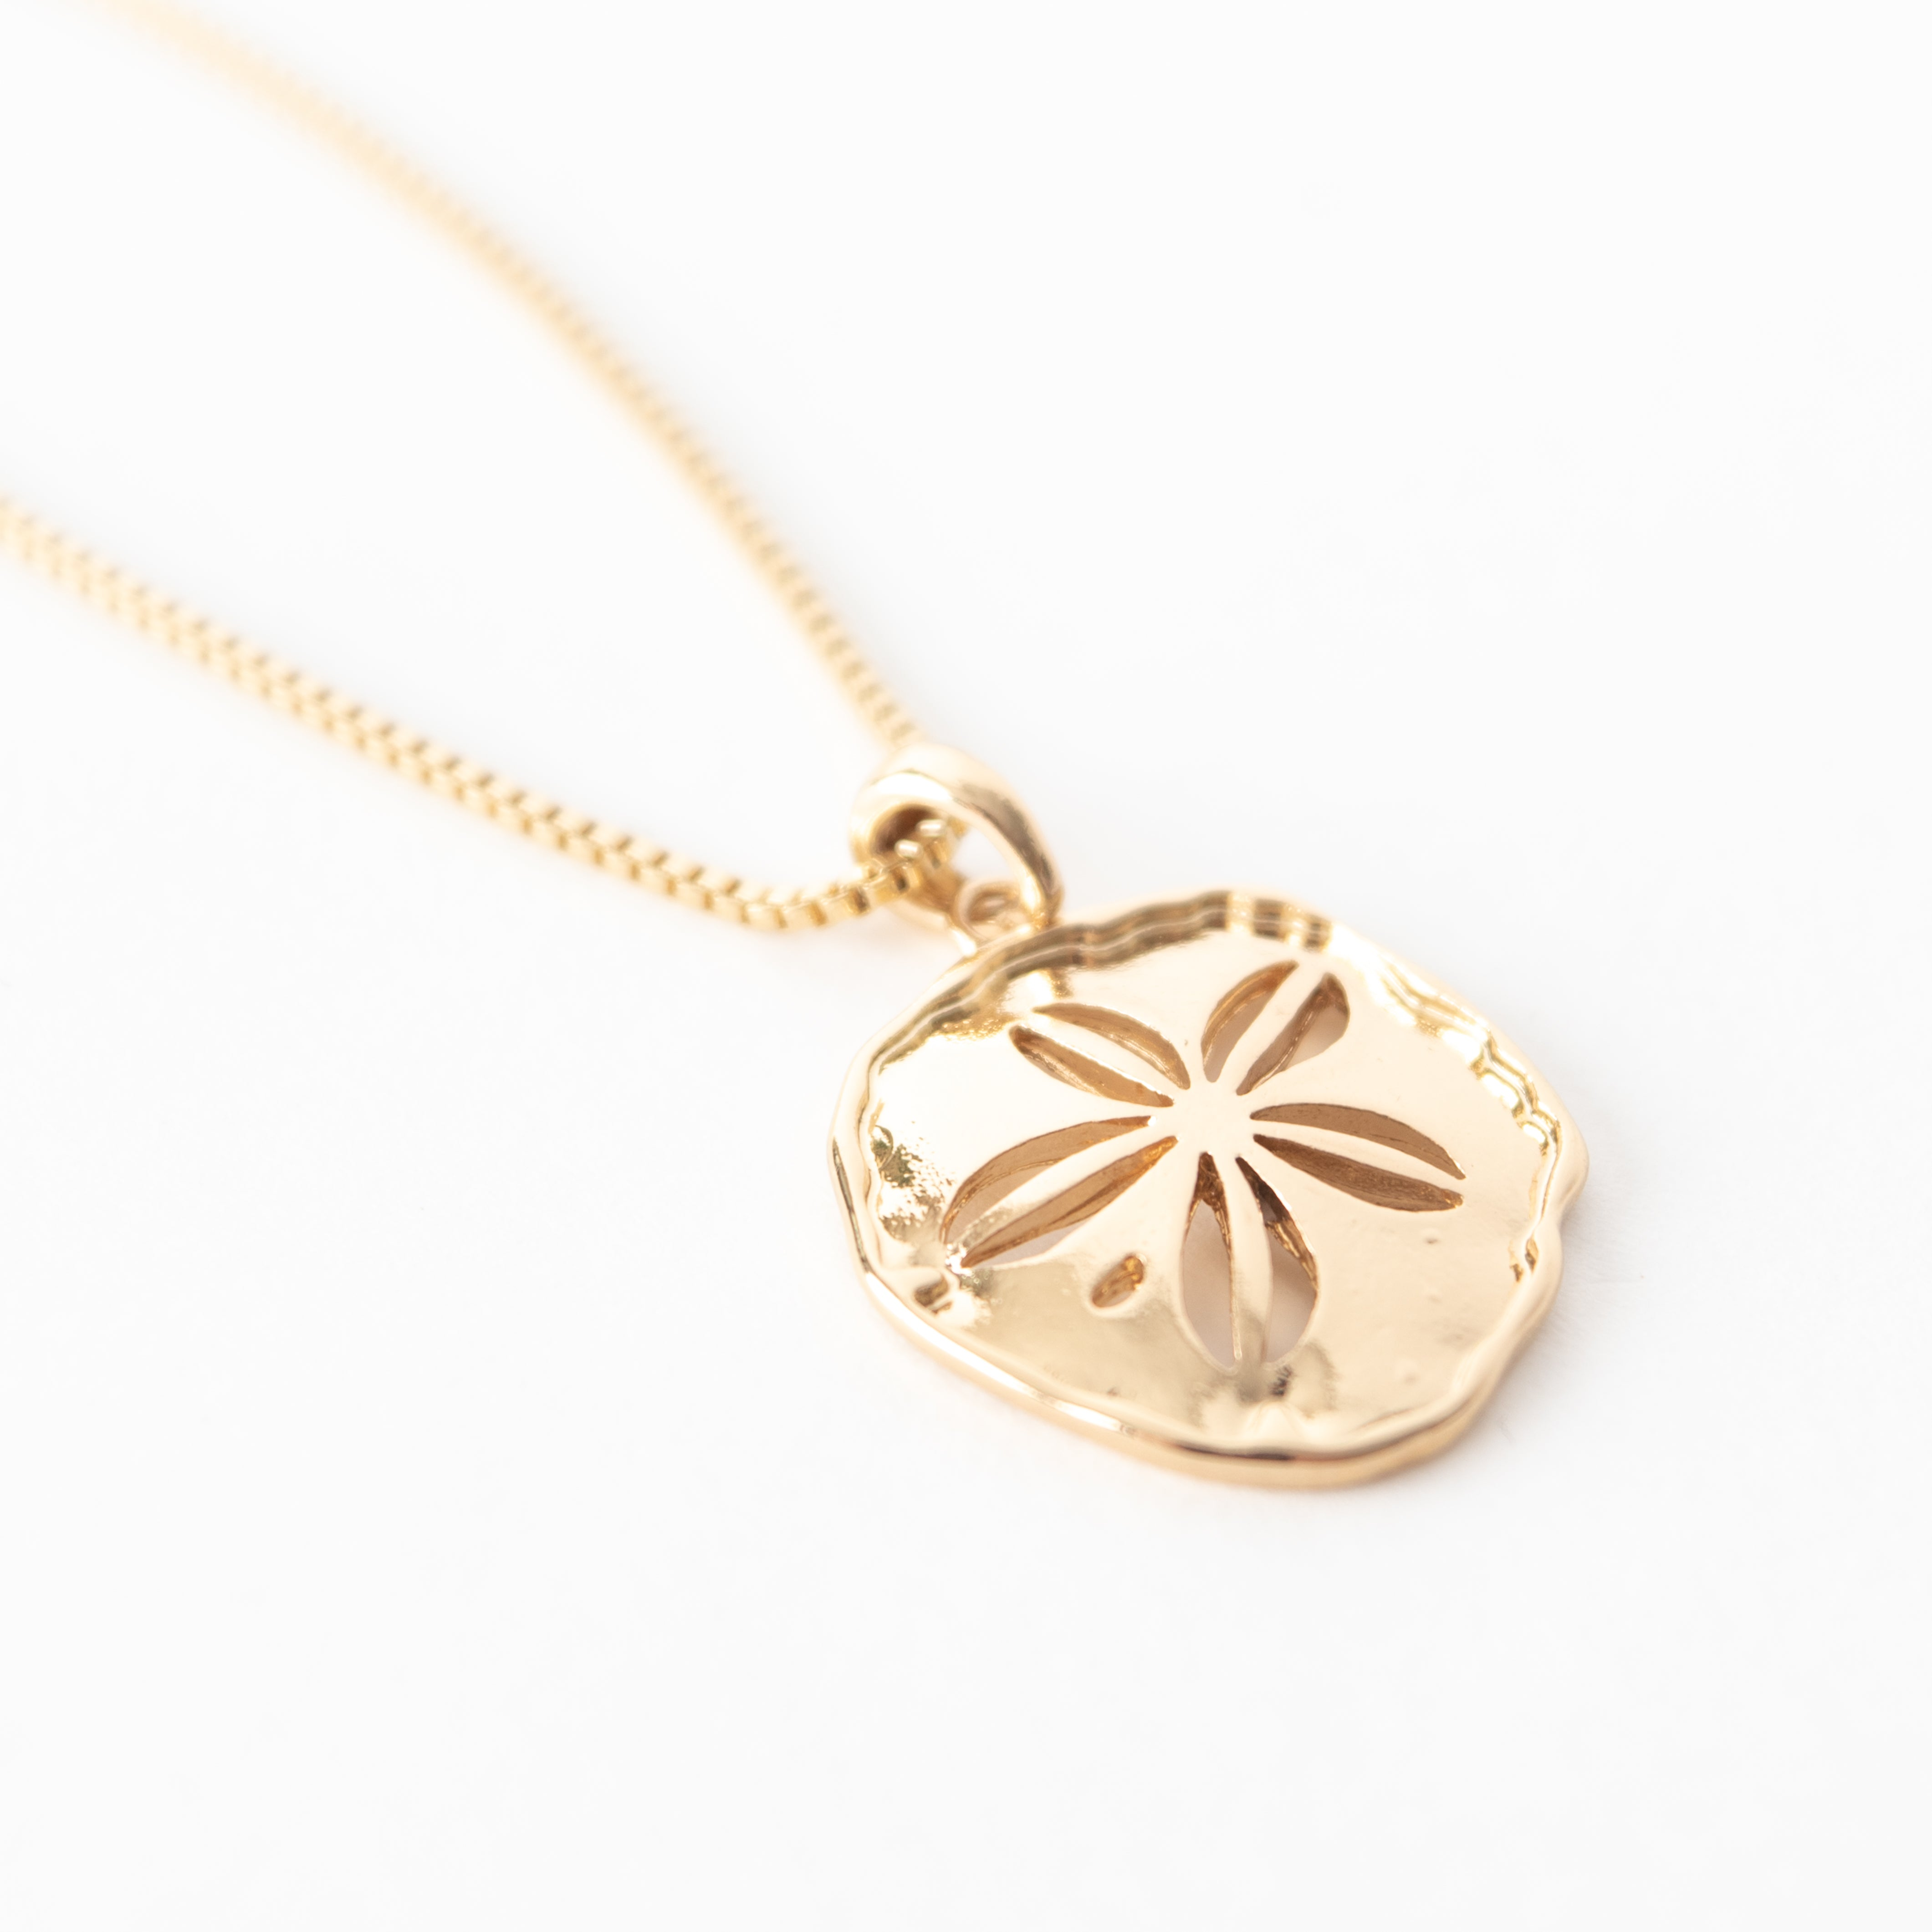 Beck & Boosh Sand Dollar Long Necklace Plated Gold Sand Dollar Pendant Hanging From Long Gold Plated Chain